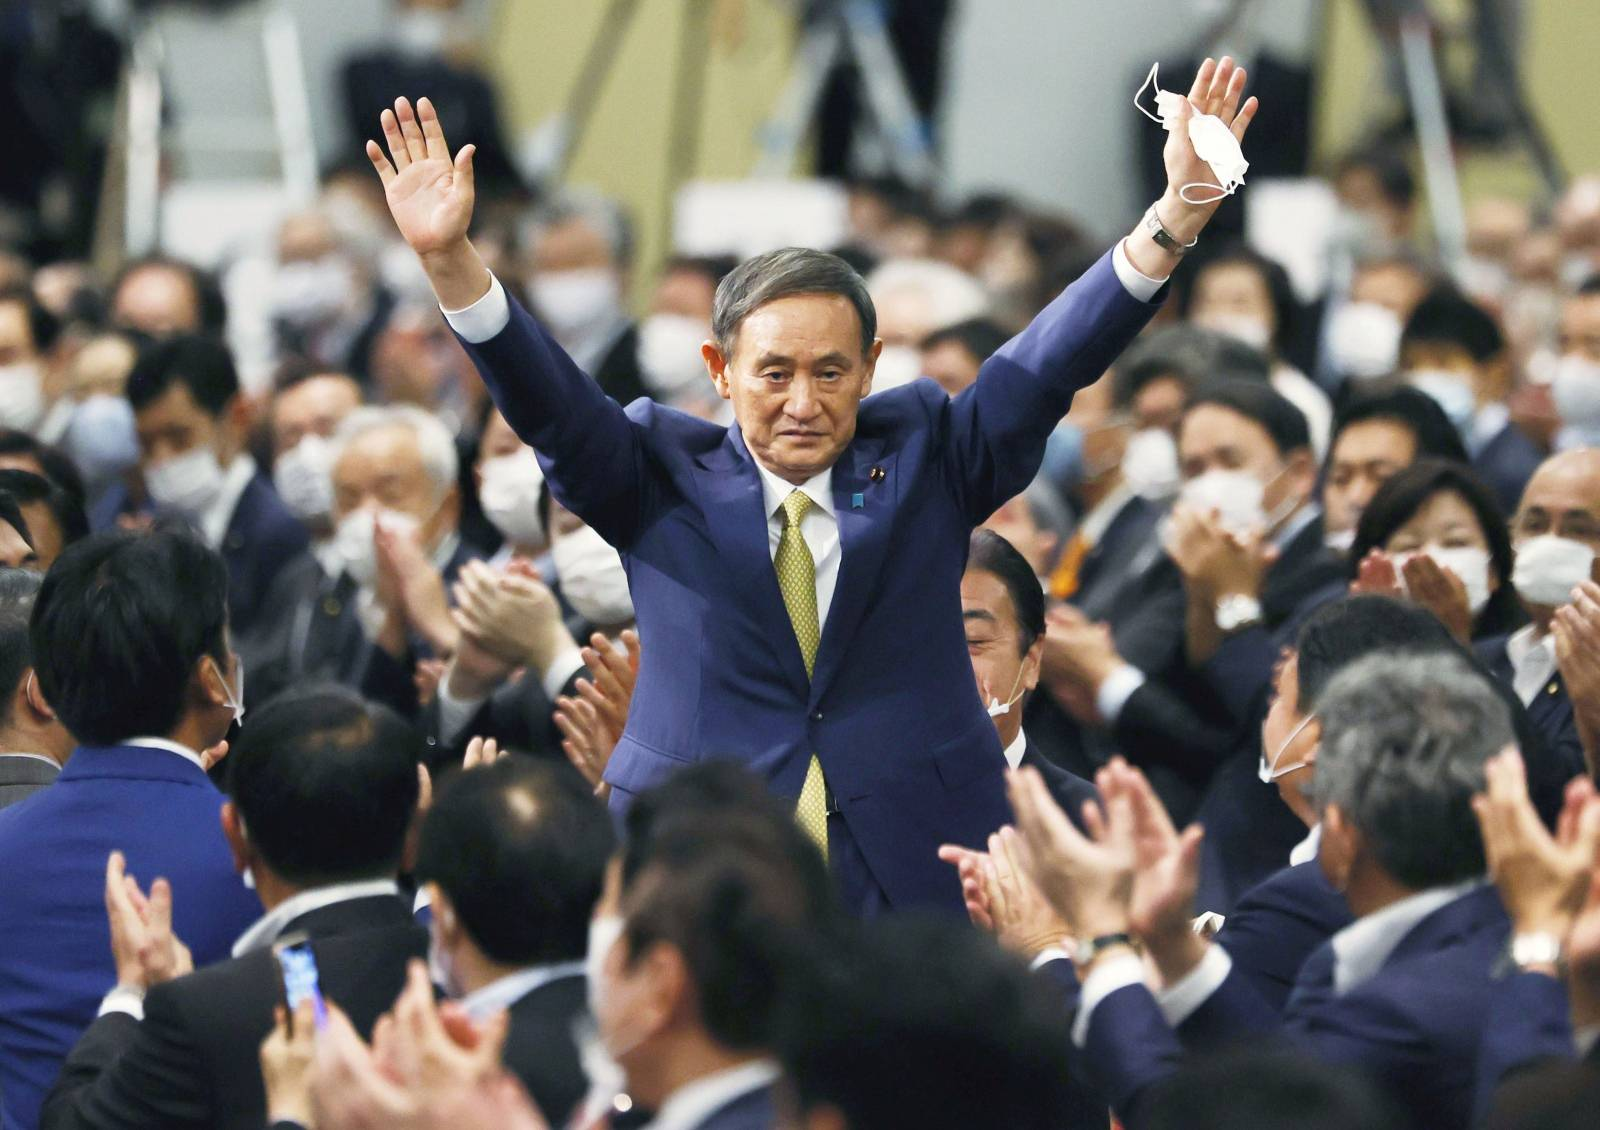 Japanese Chief Cabinet Secretary Suga gestures as he is elected as new head of the ruling party at the Liberal Democratic Party's (LDP) leadership election in Tokyo